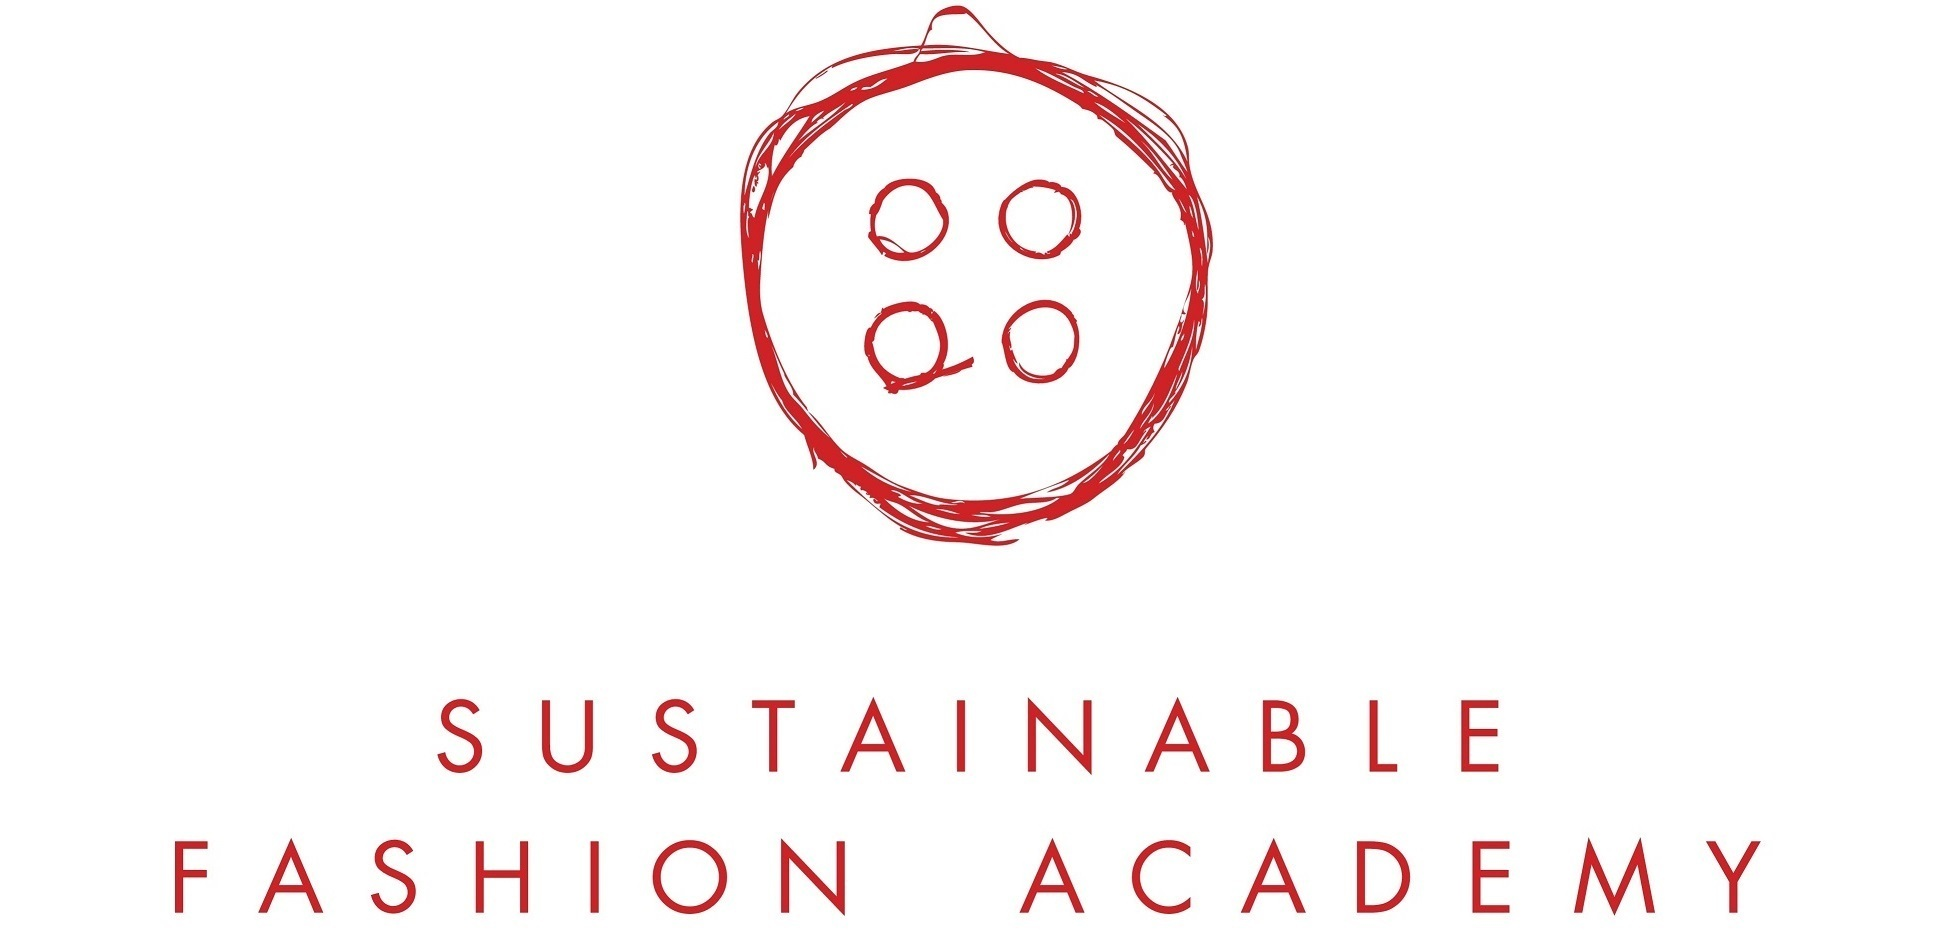 ySustainable Fashion Academy